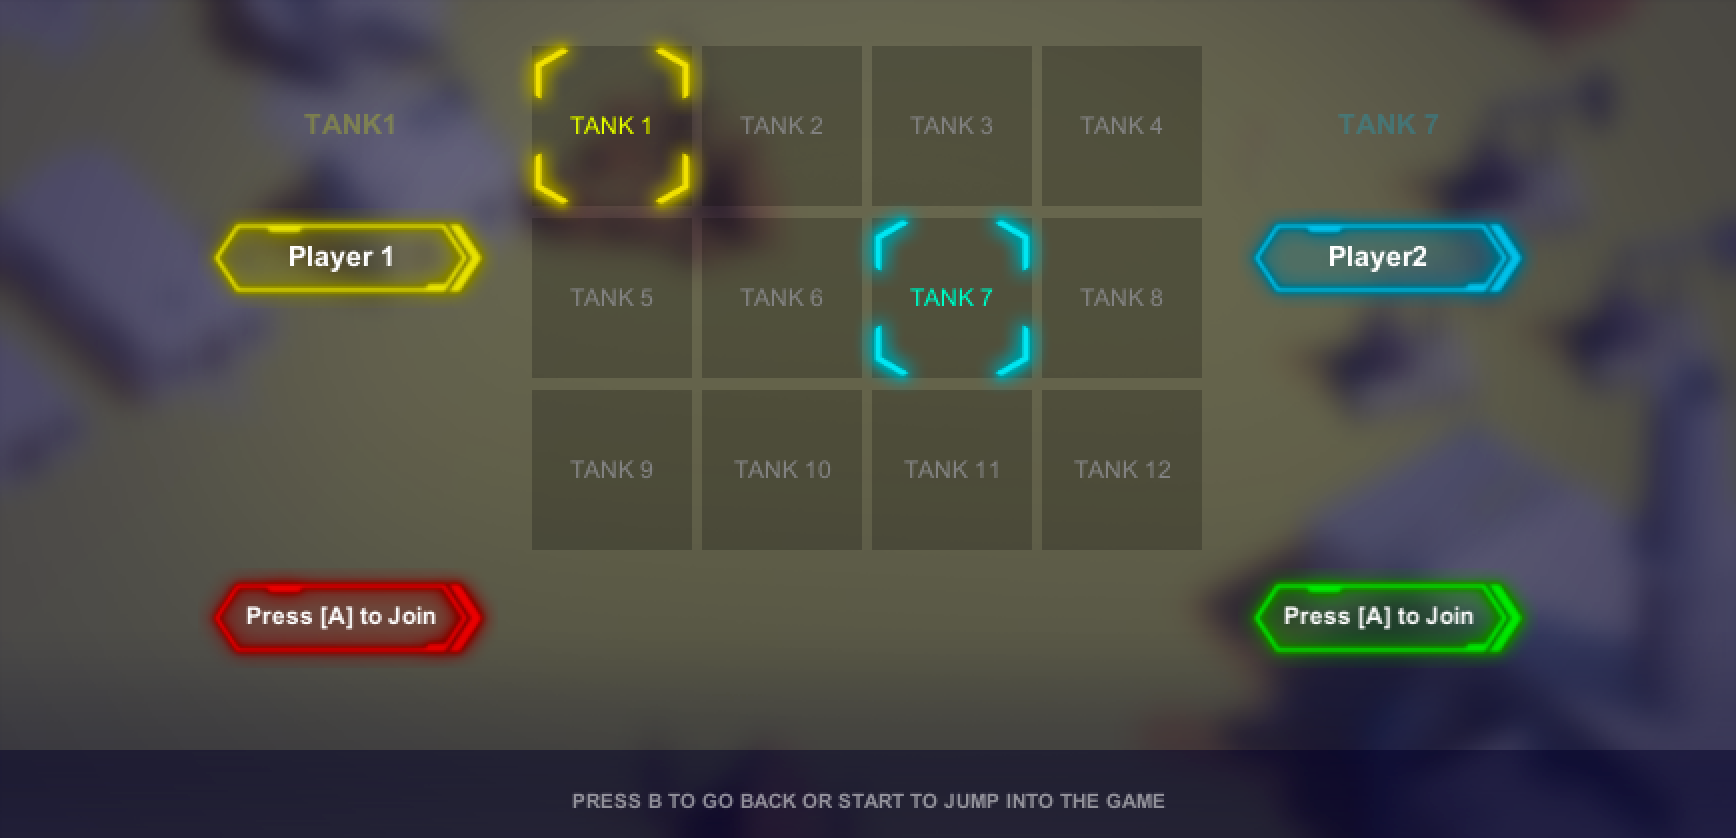 123 teach me tank game - I Know Maybe A Little Bit To Futuristic And To Holo But That Can Be Changed The Basic Idea Is That You Can Select A Tank Here And Whoever Wants To Join